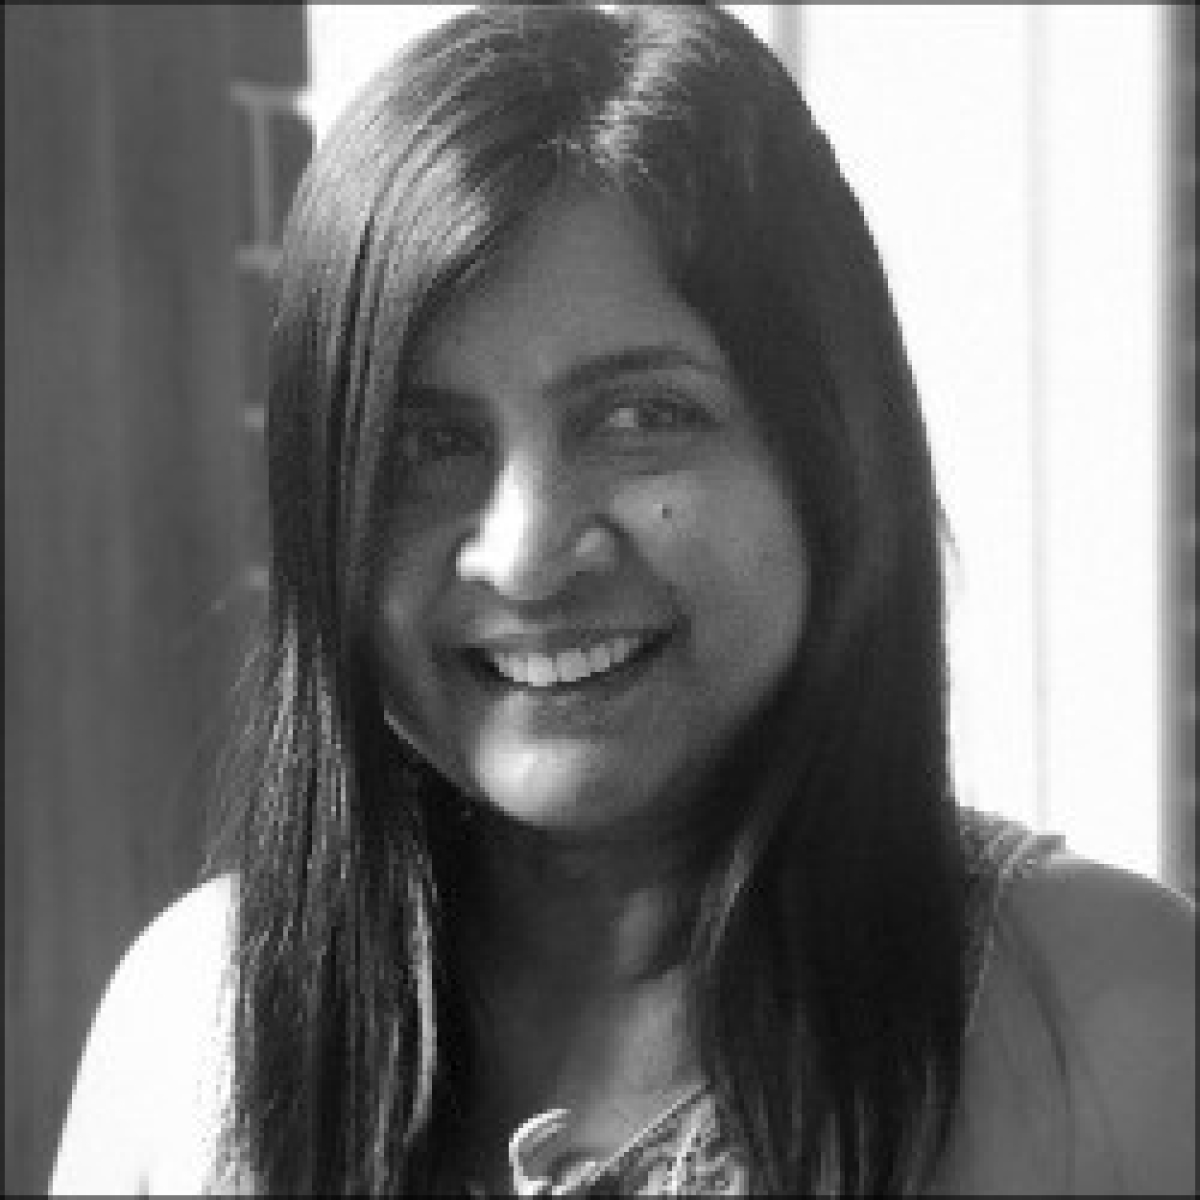 Clio Awards have two jurors from India